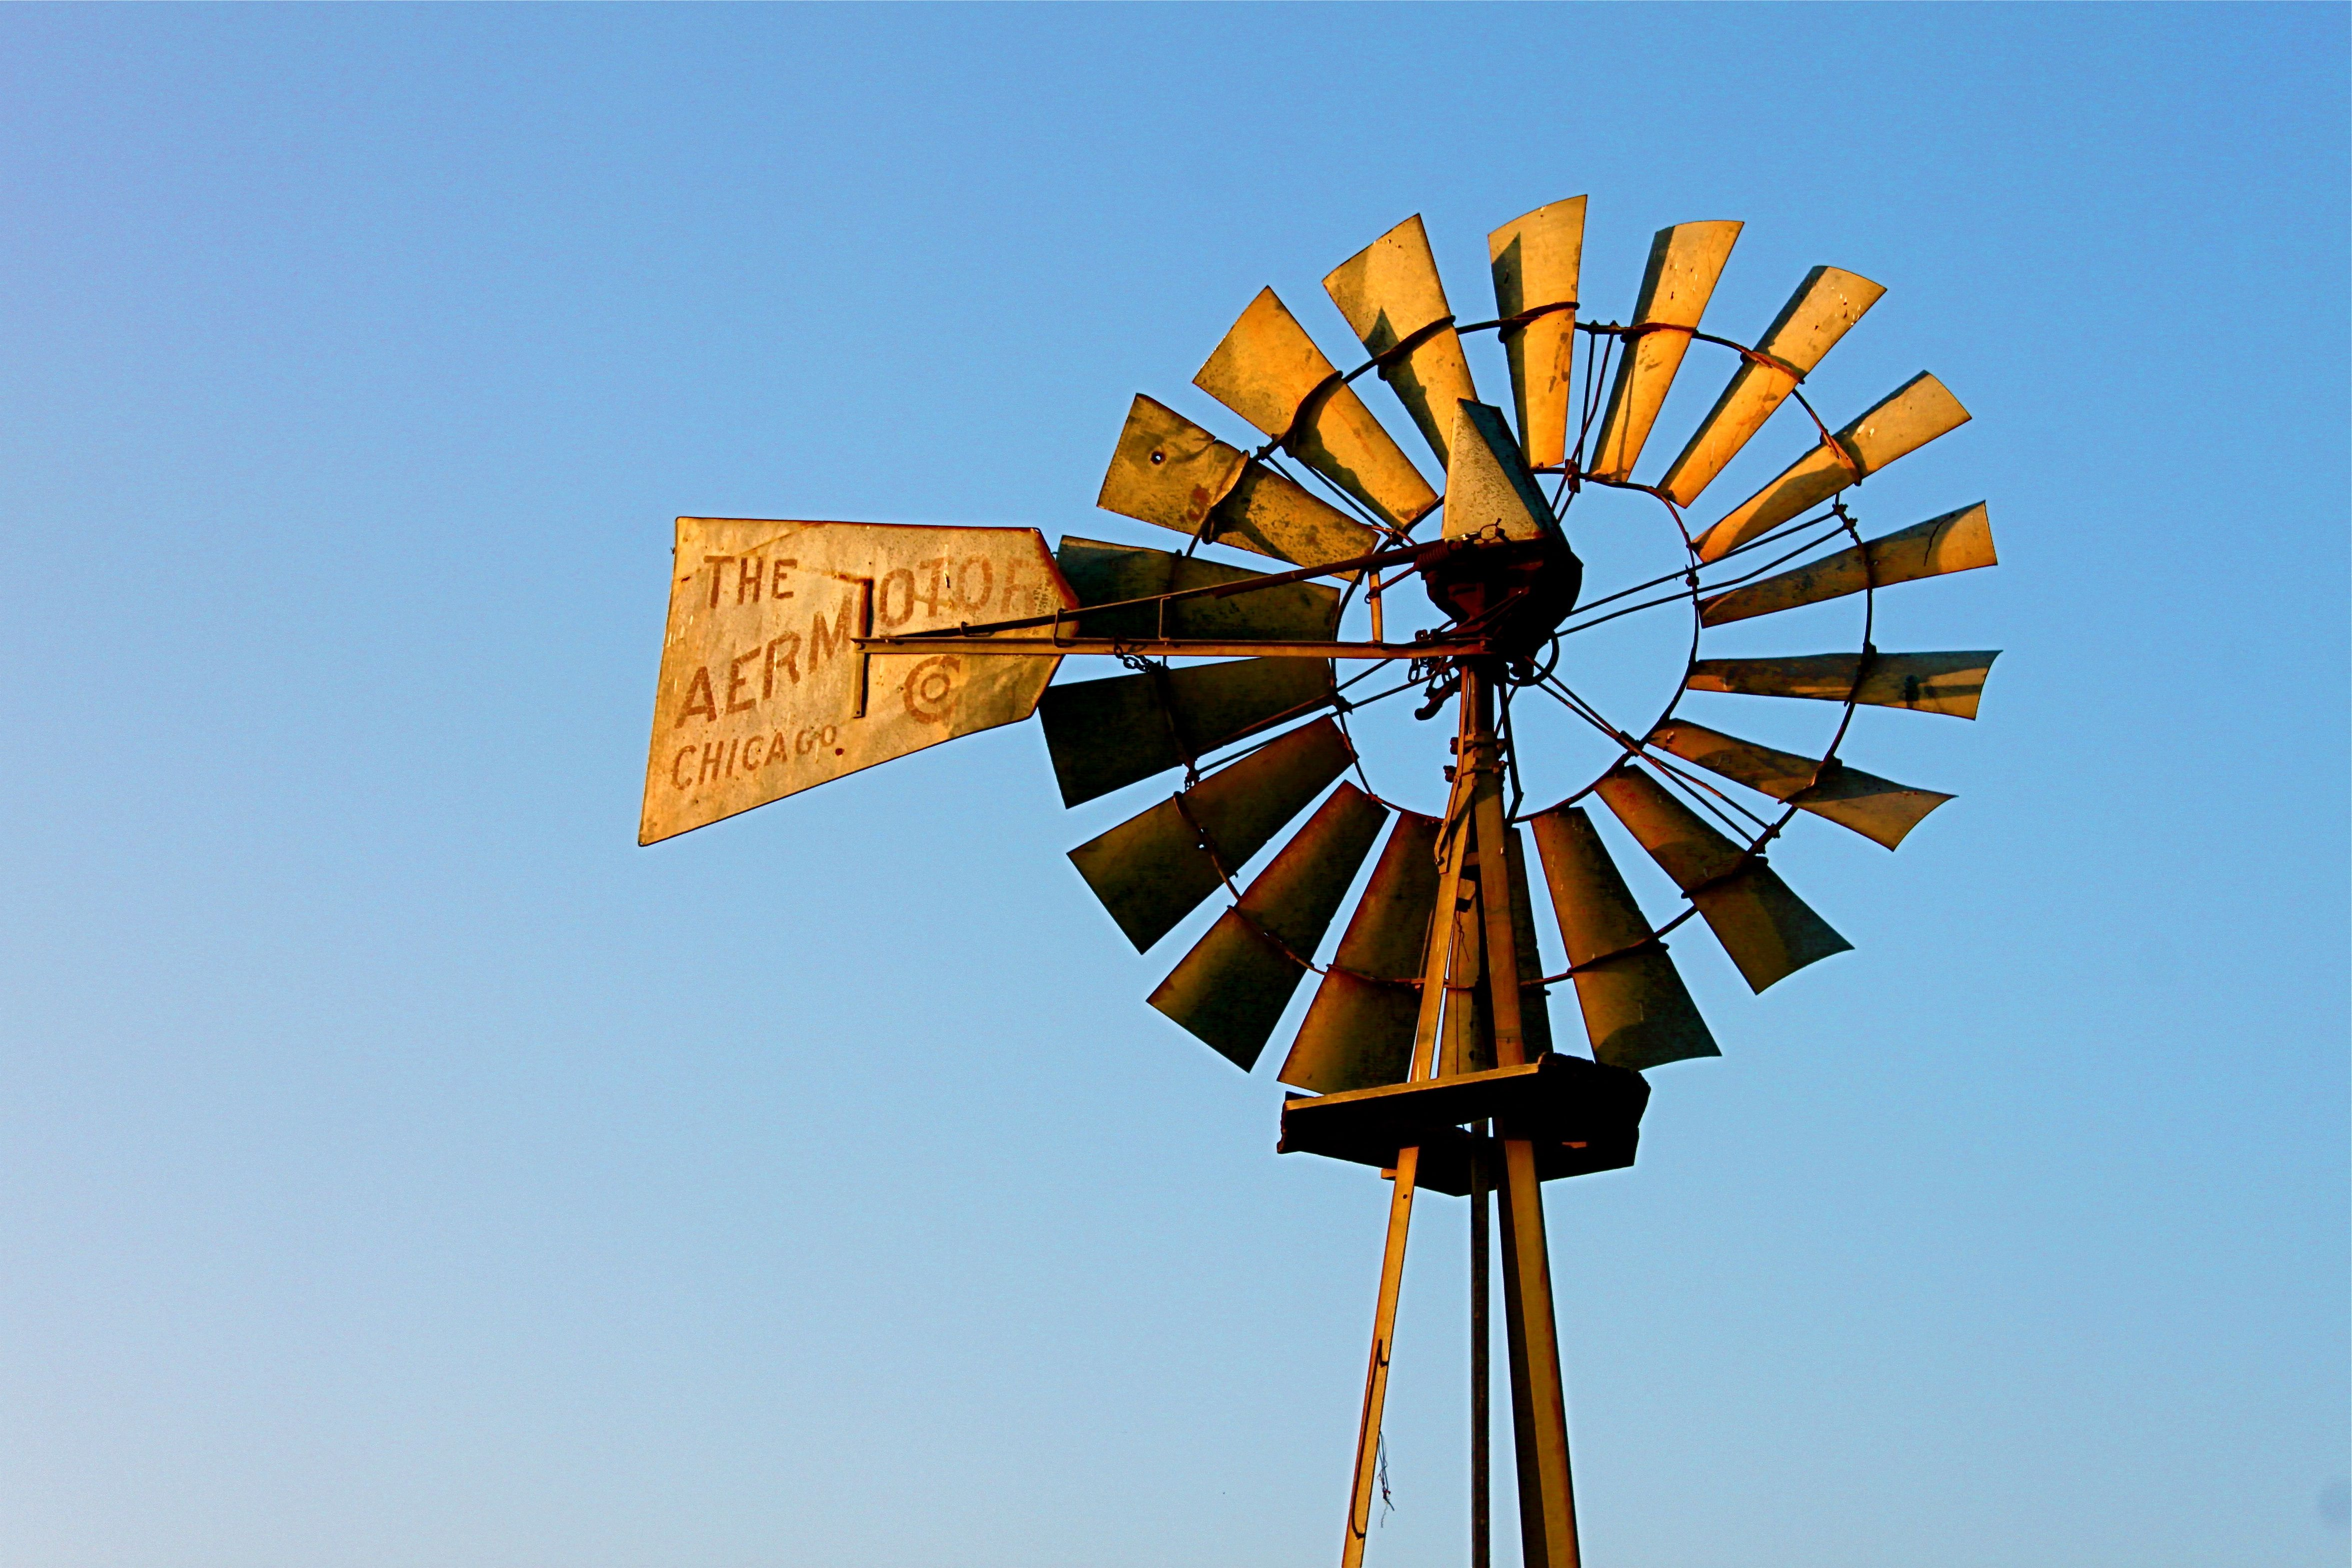 Old Windmills No Longer Turn With The Wind These Power Generators Would Run The Pump Jack And Draw Up Water Now This Is Old Windmills Clark Art Sale Poster